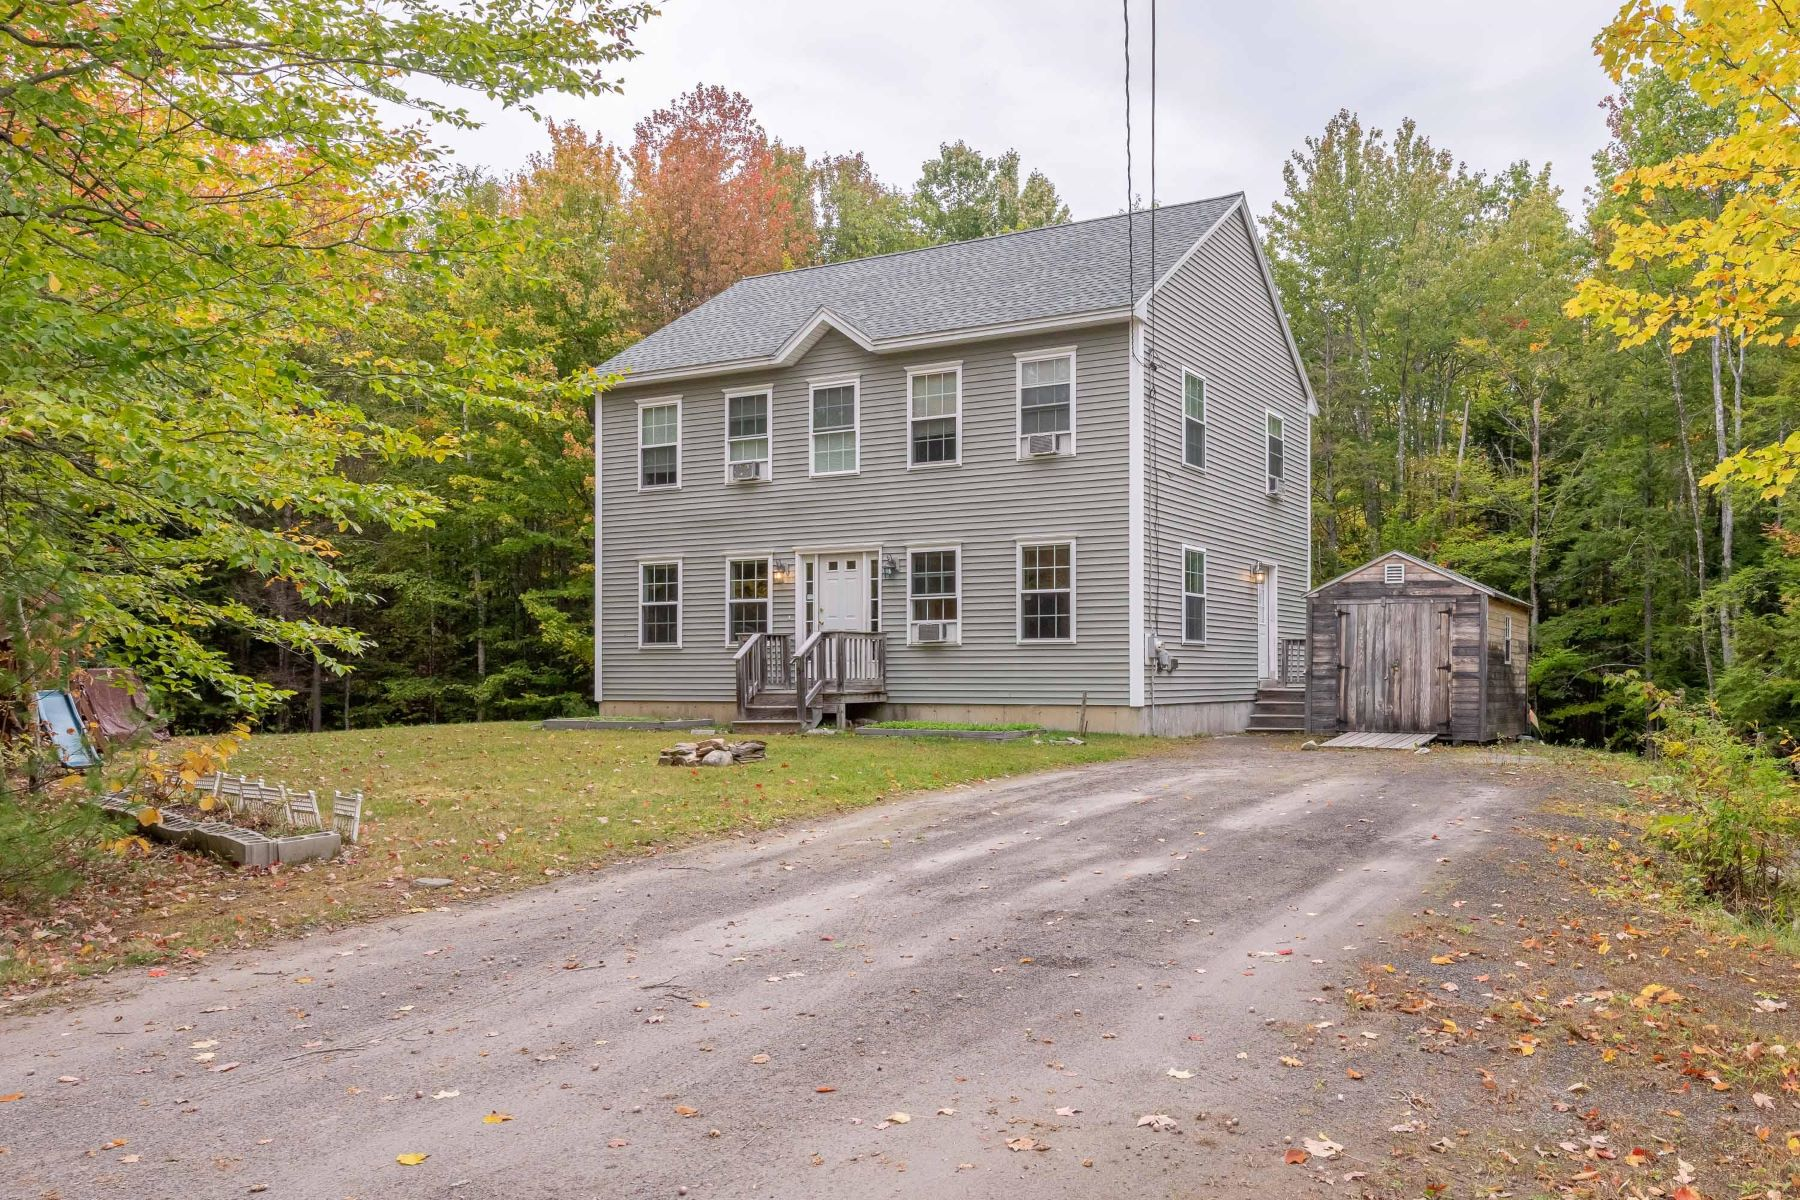 Single Family Homes for Sale at 15 Treasure Lane Windham, Maine 04062 United States